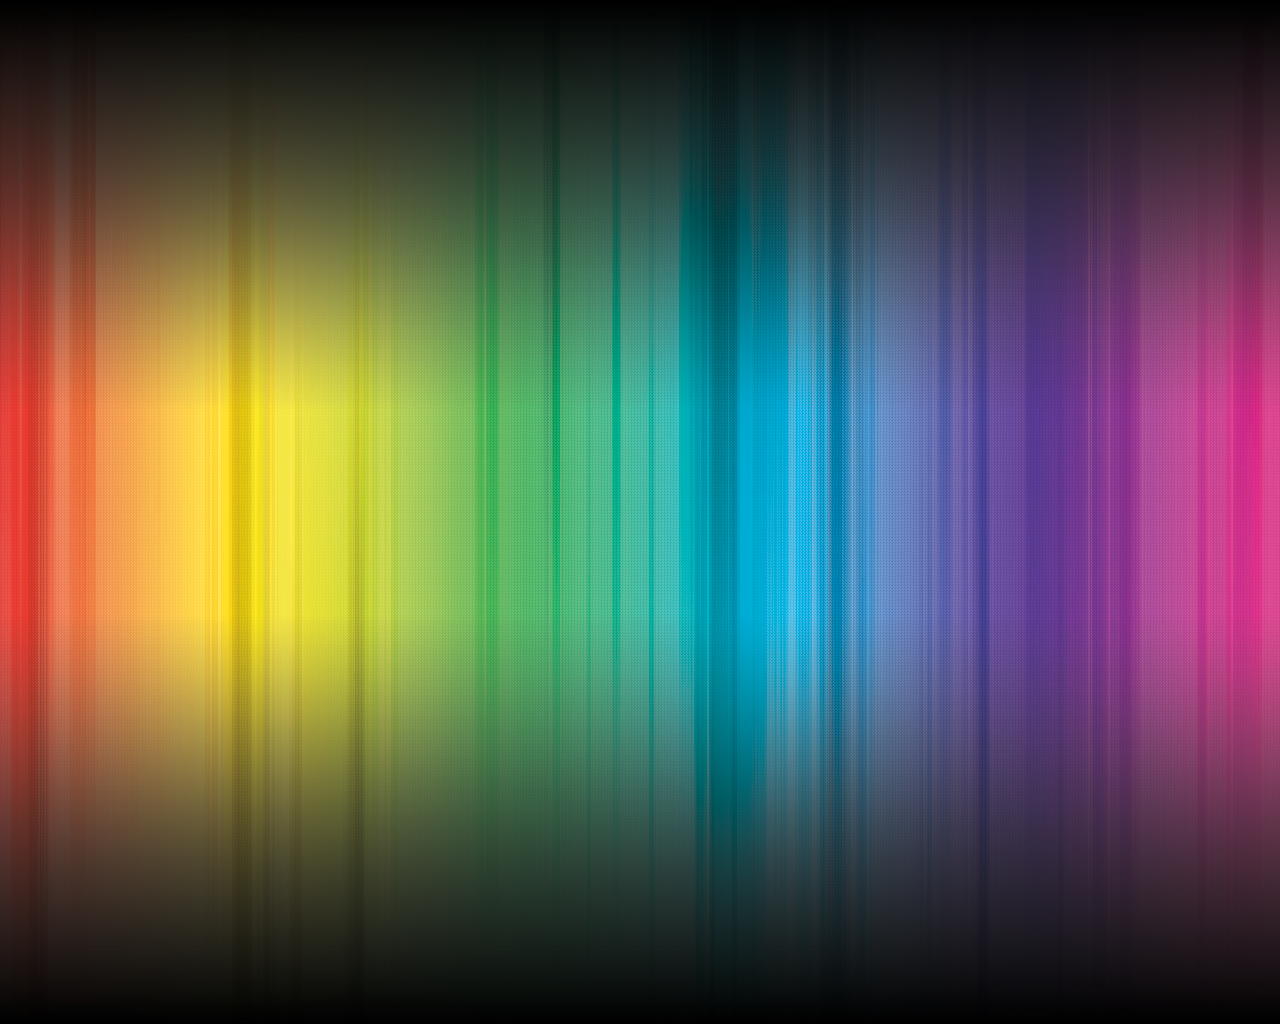 colour spectrum abstract background - photo #35